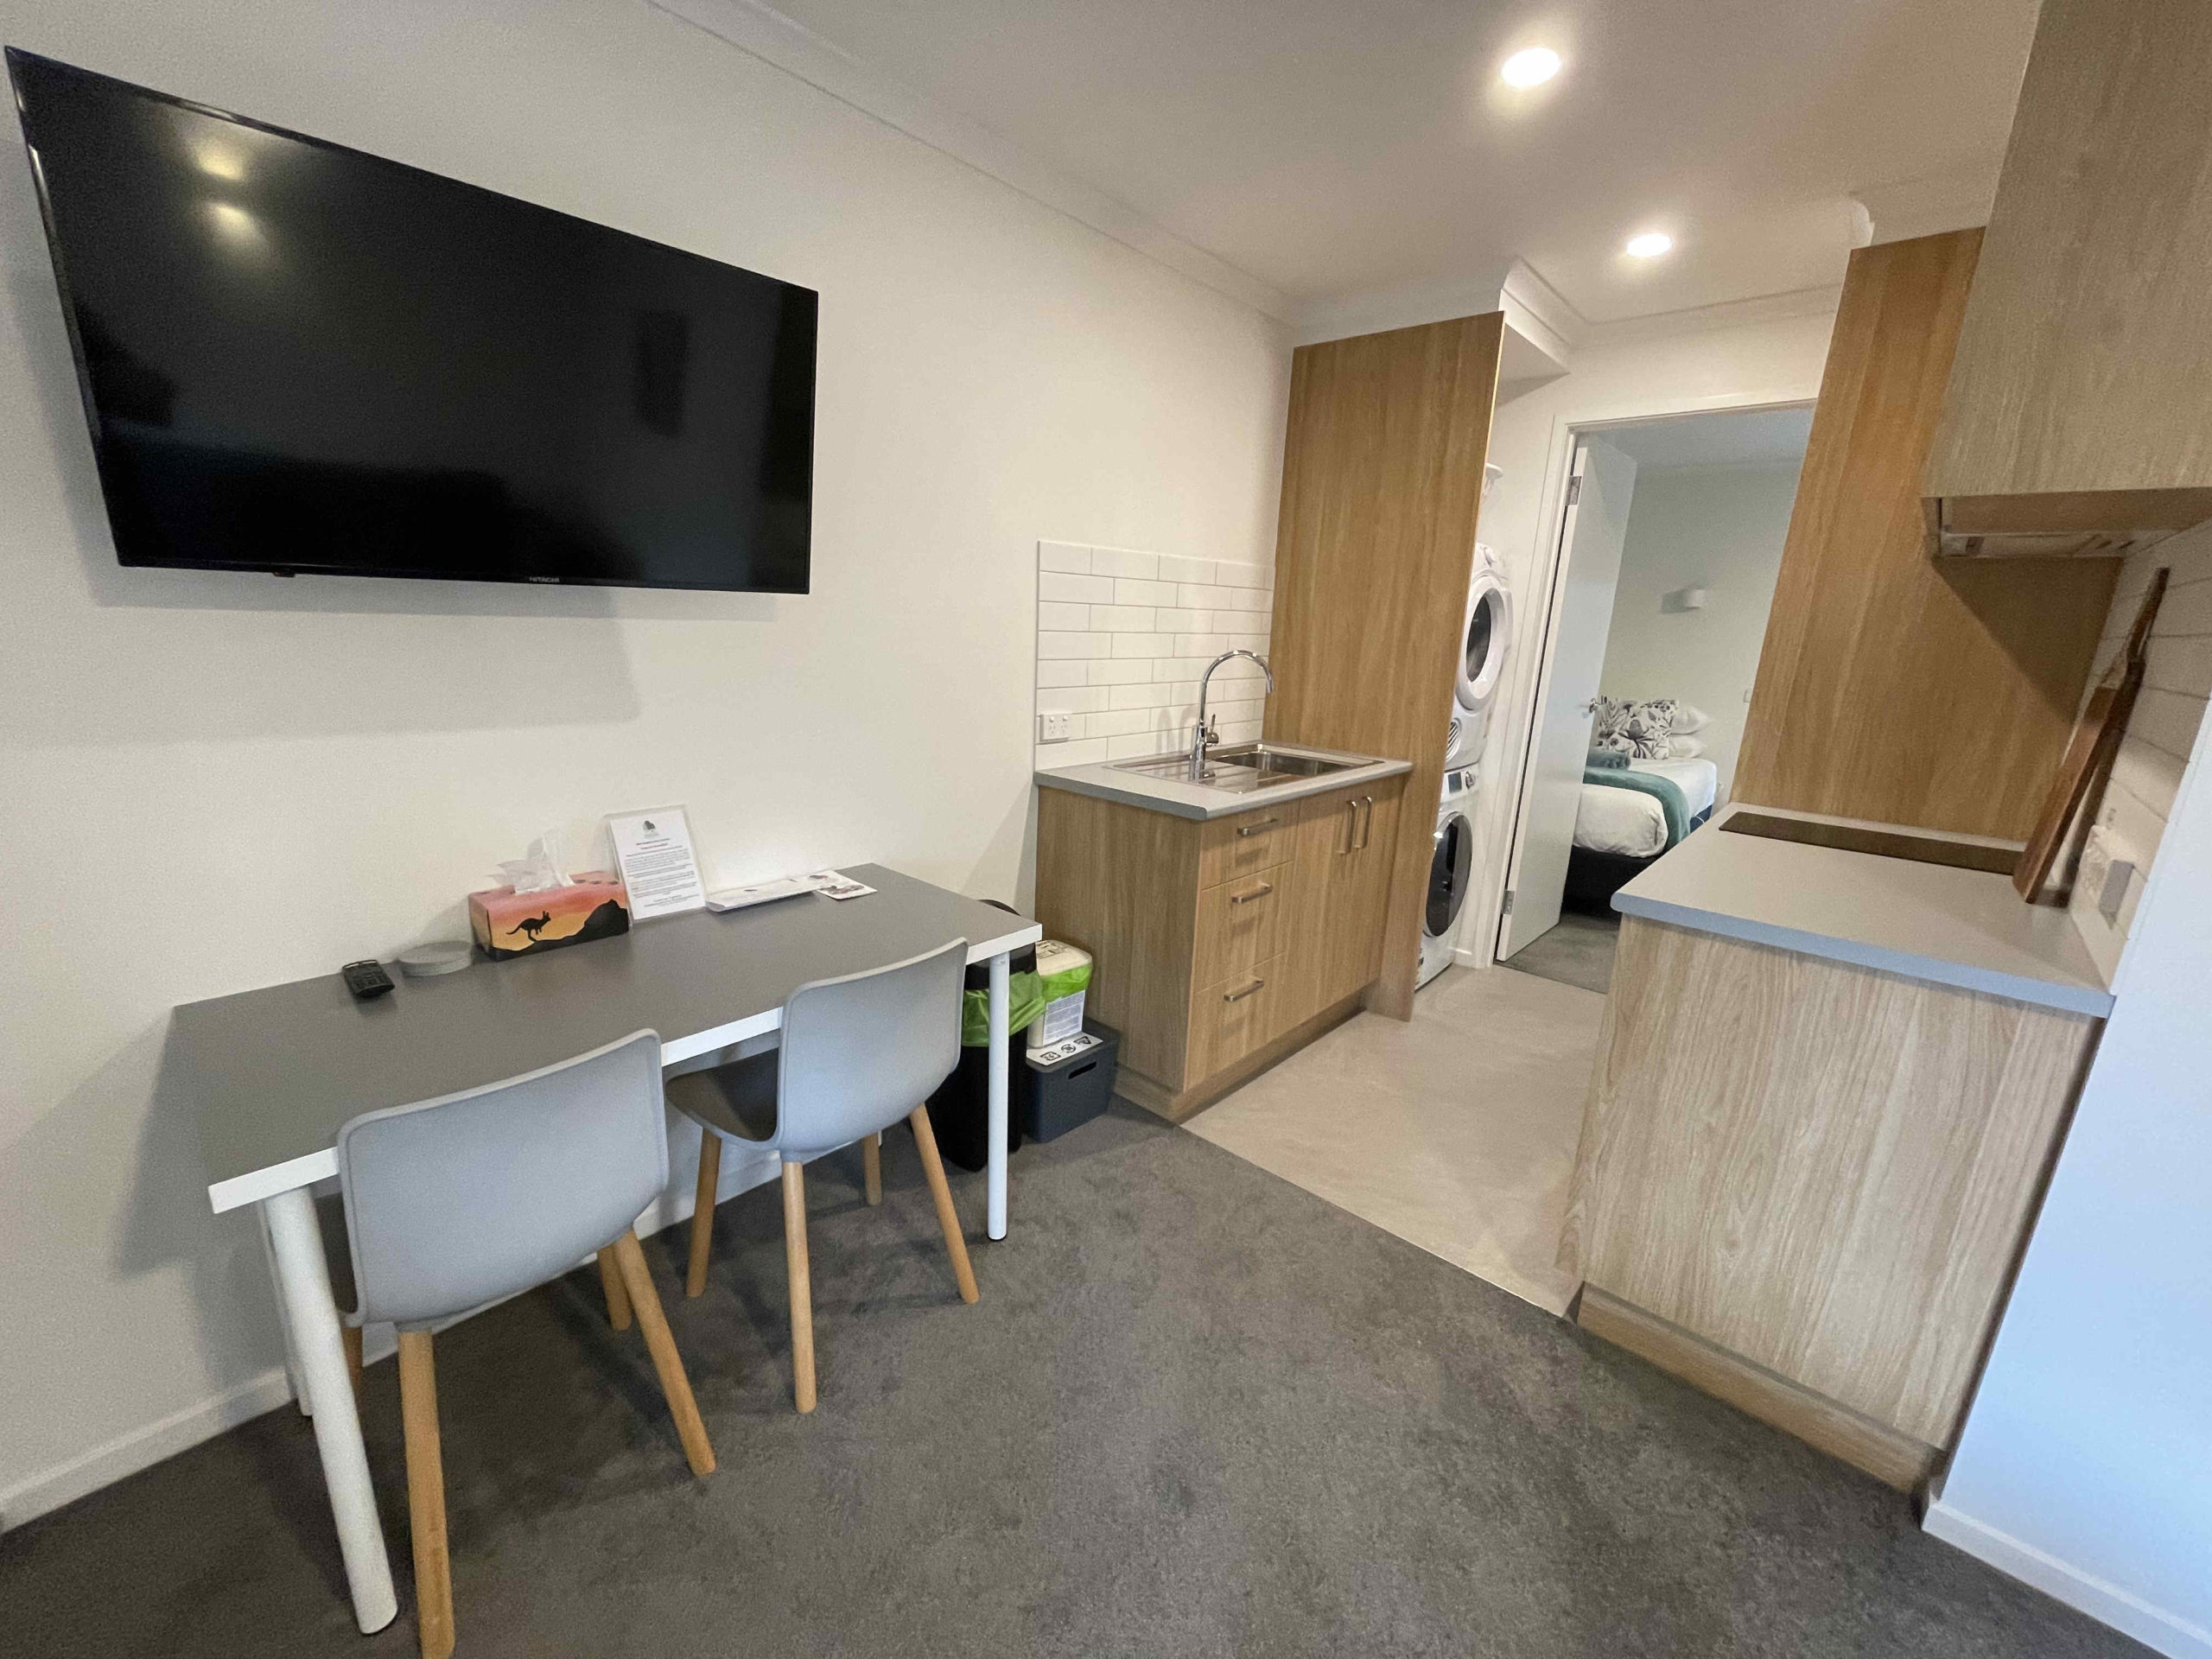 Kitchen and dining area of one bedroom apartment with one king bed and one single bed